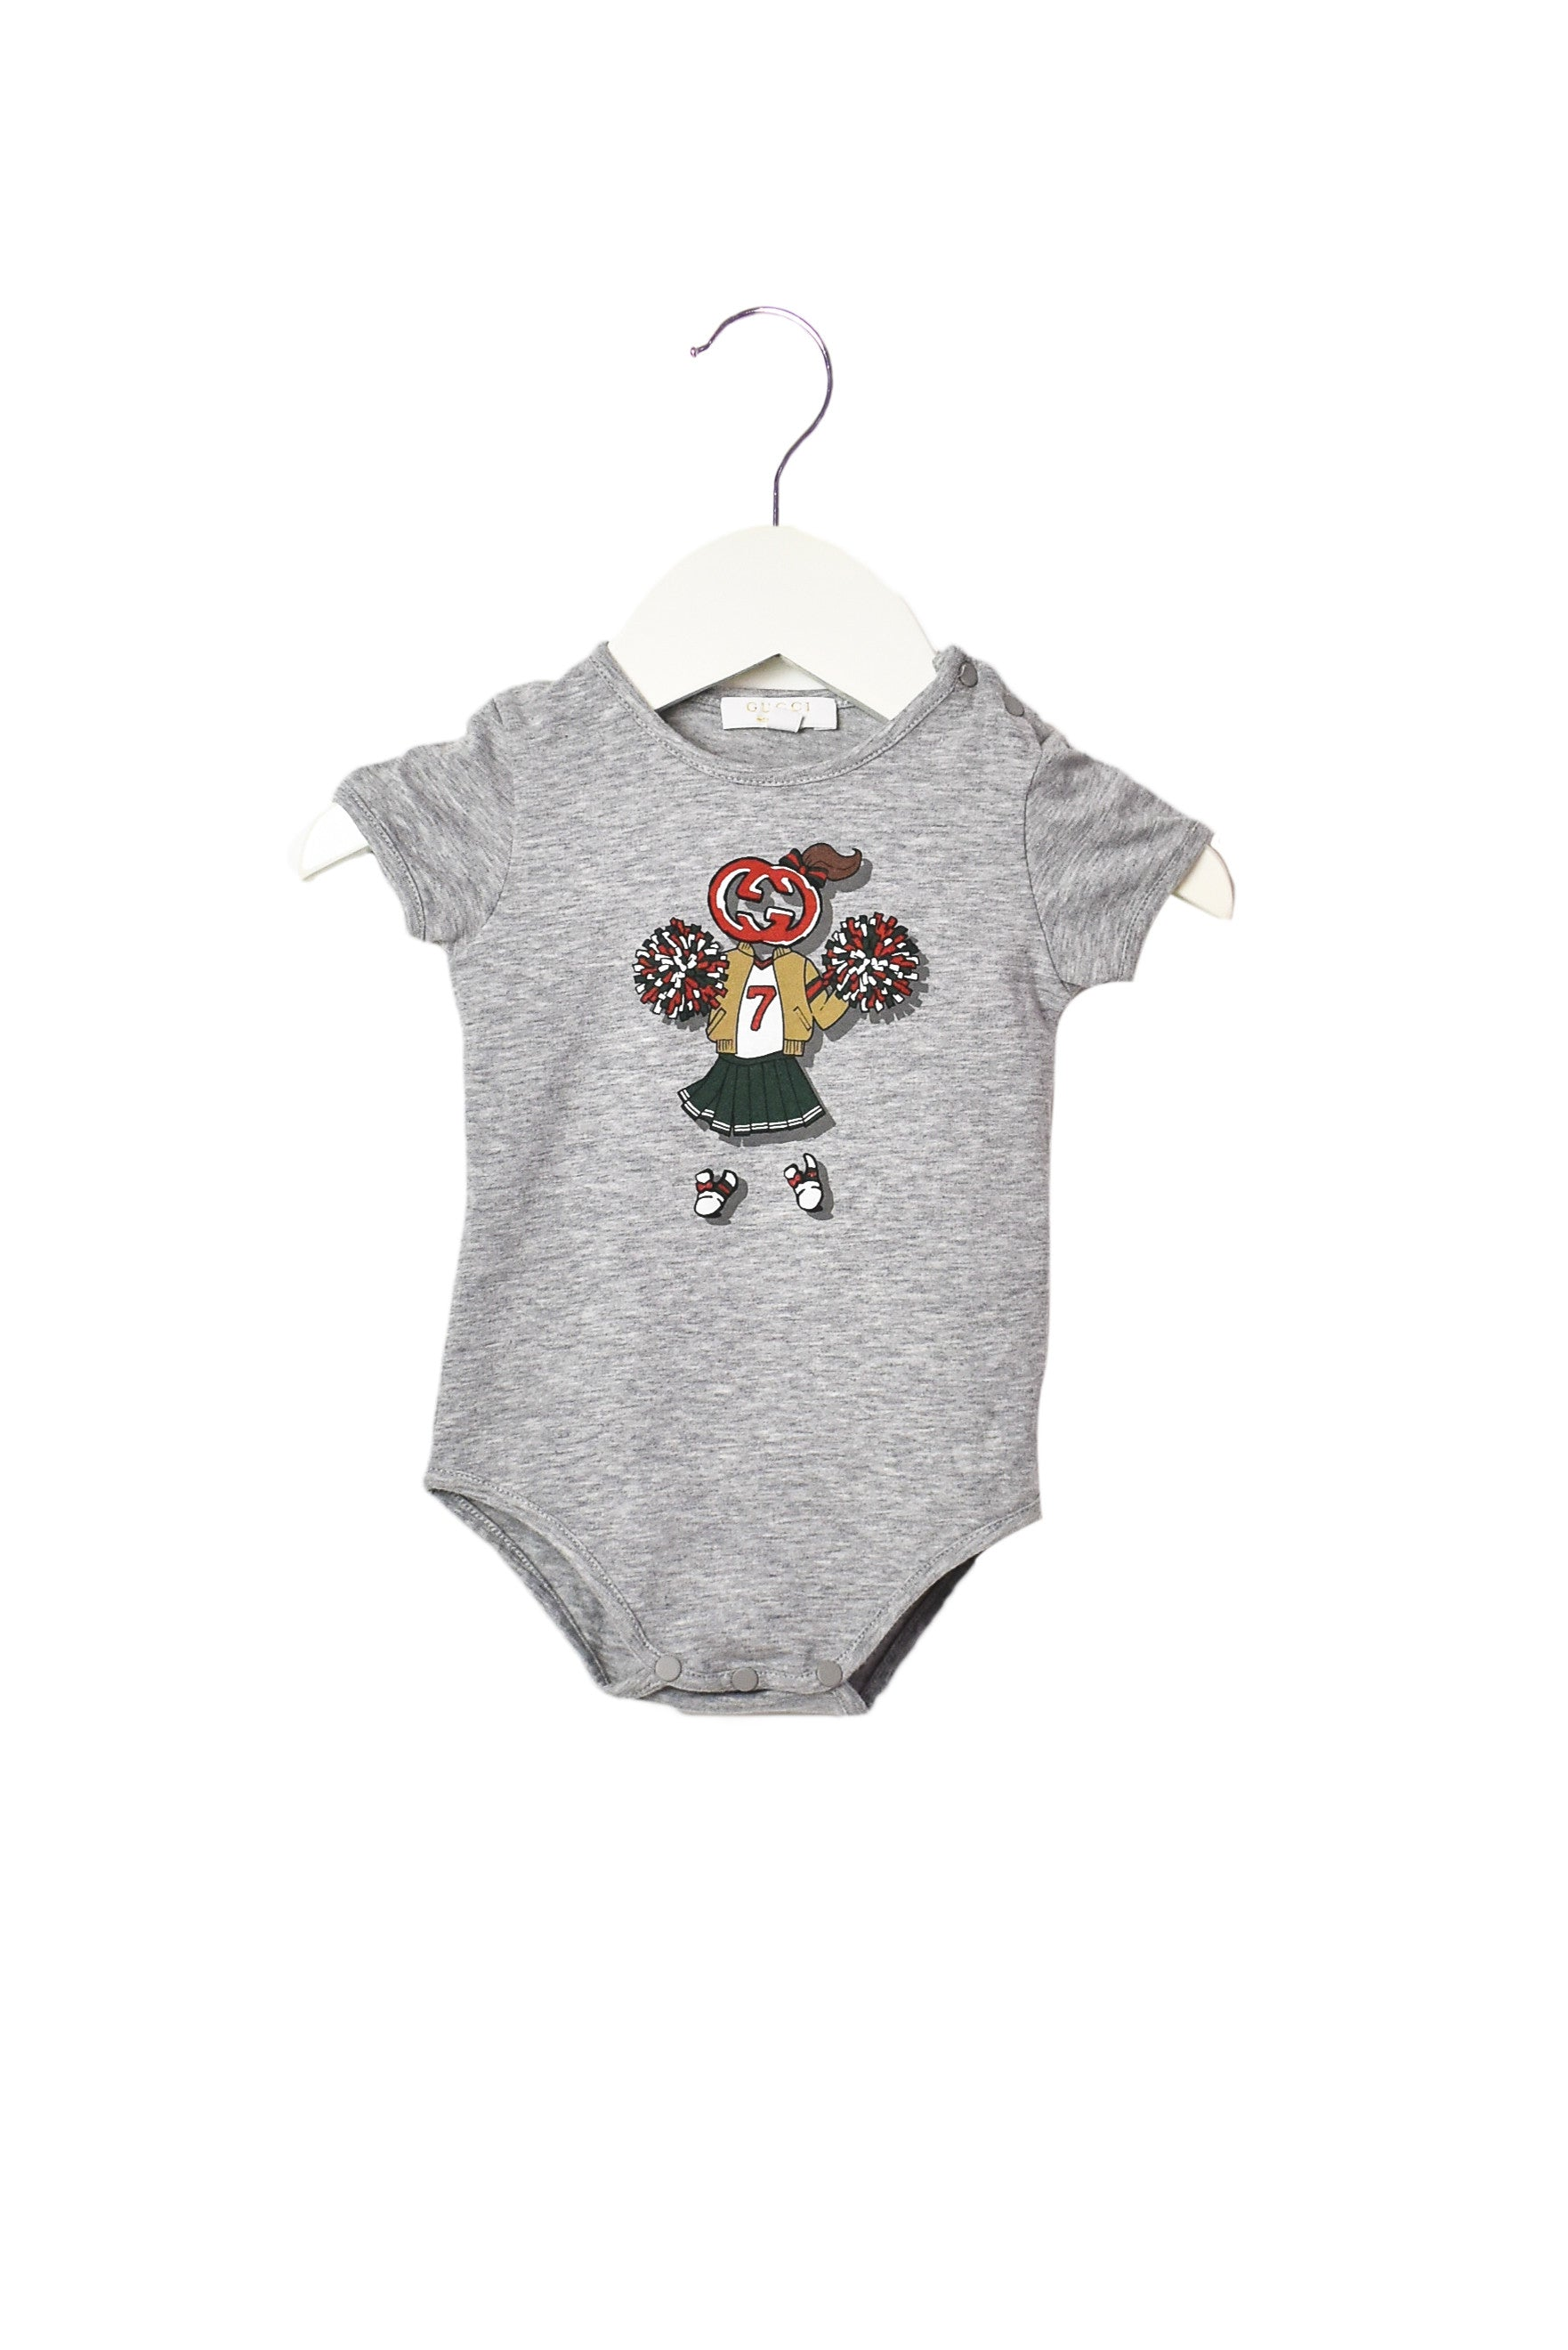 95081bfe0 10004185 Gucci Baby~Bodysuit 6-9M at Retykle